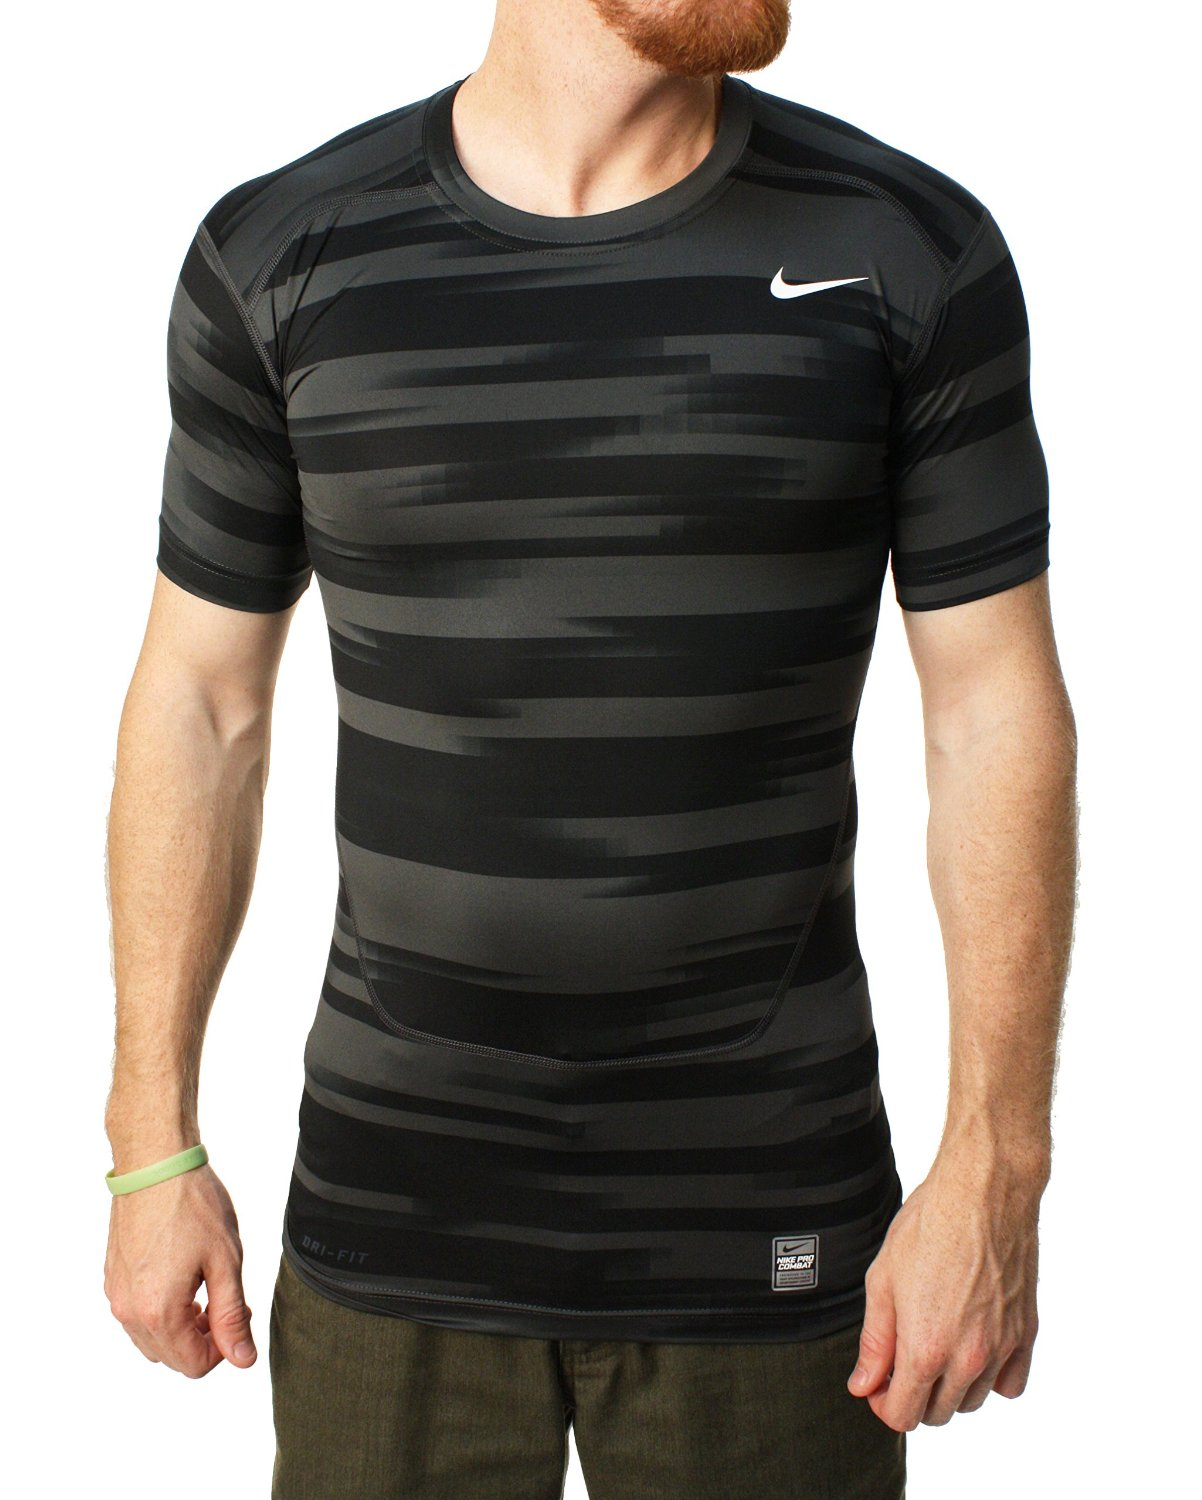 7453da85657bf Nike Men s Dri Fit Pro Combat Frontline Striped Compression T Shirt Black  Grey Large